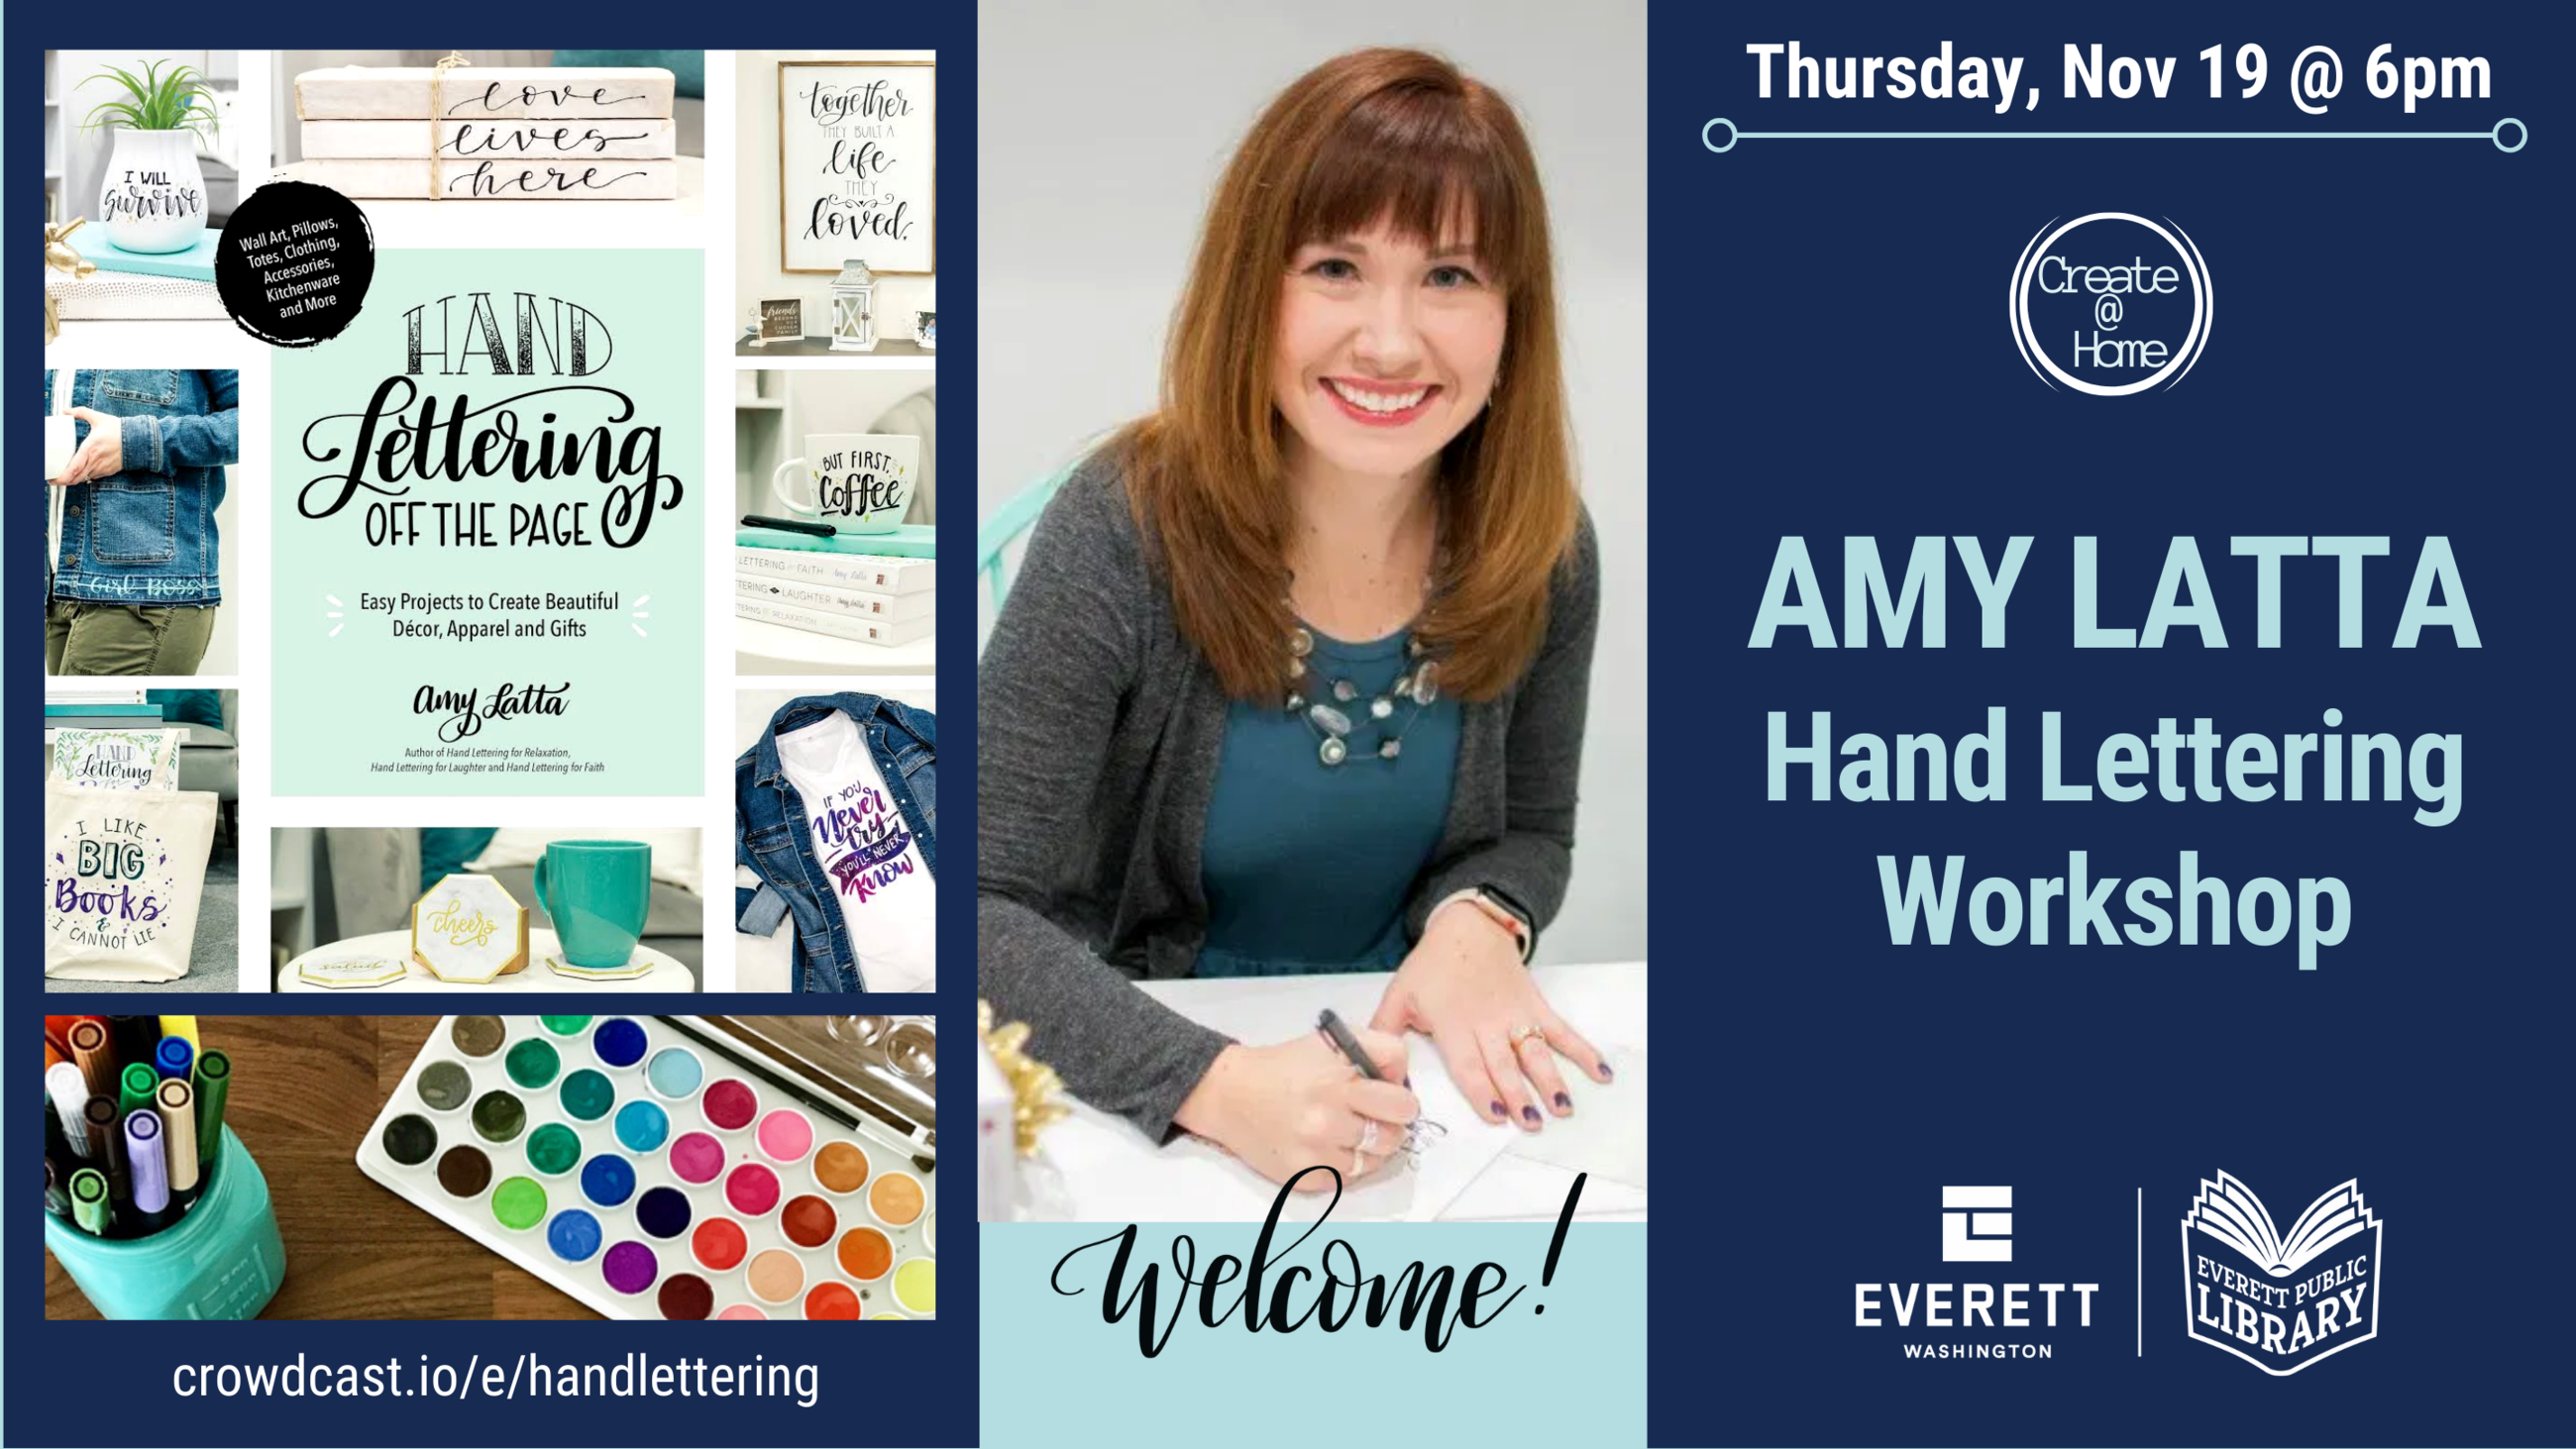 Graphic for event with blue background showing book cover and photo of Amy Latta painting lettering